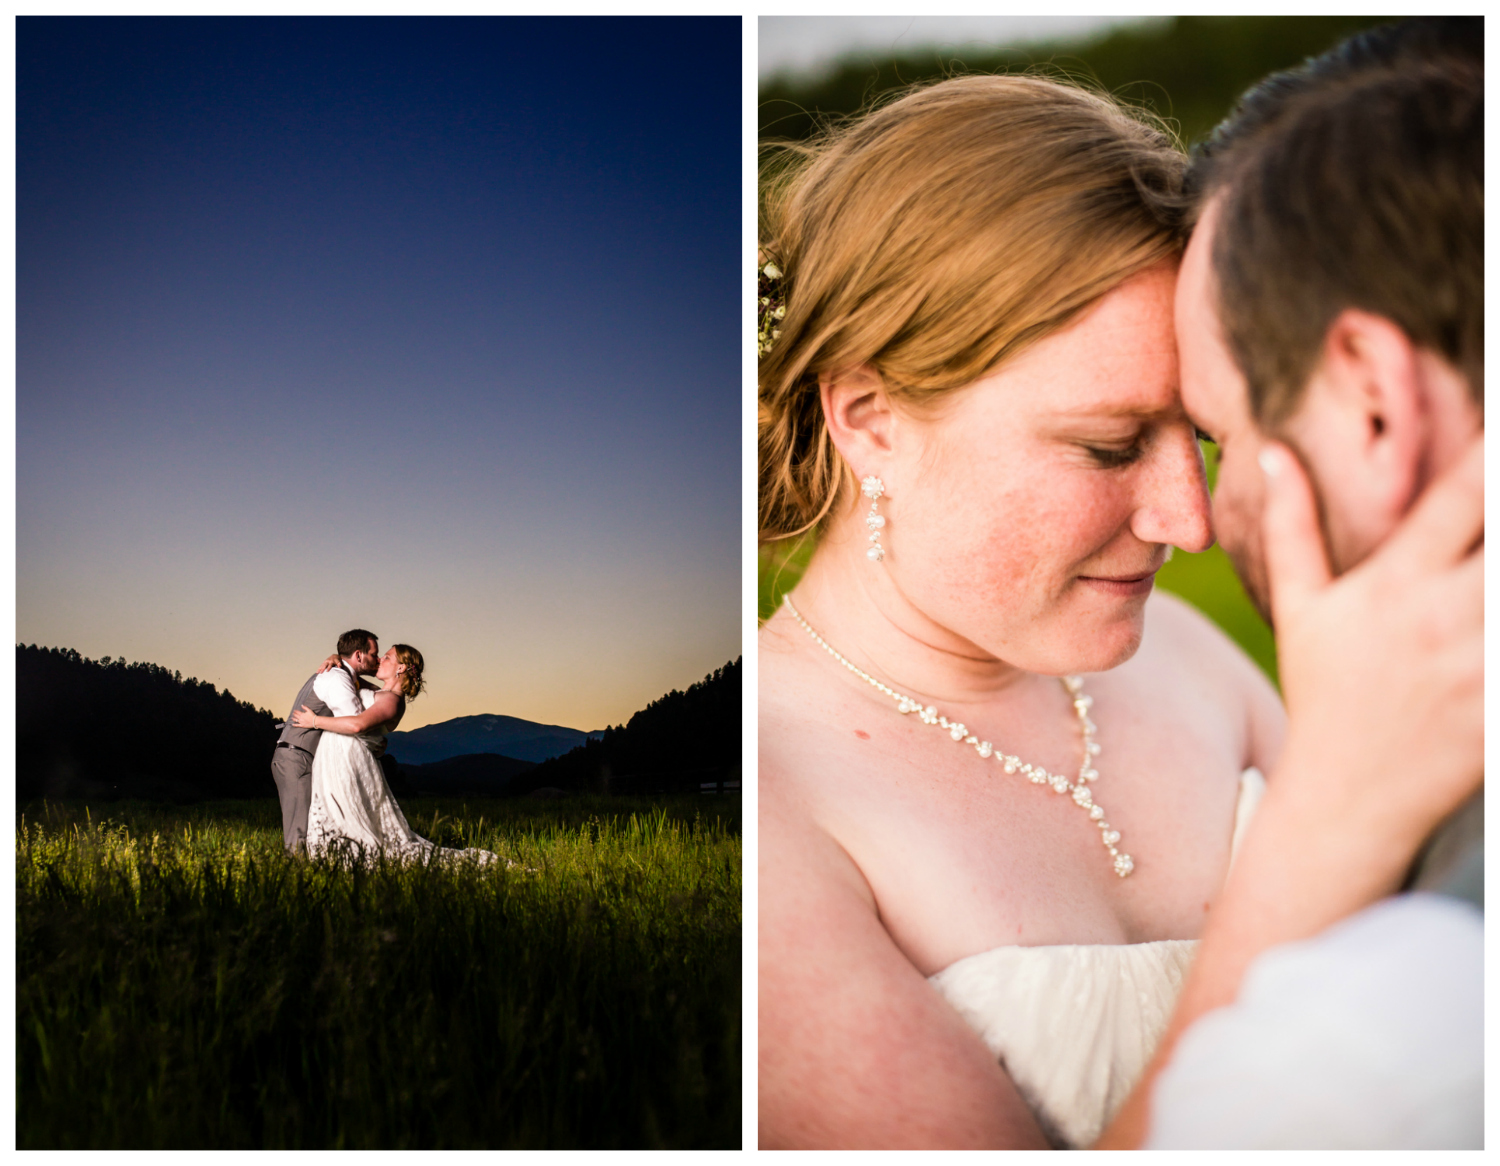 Sunset wedding pictures at Deer Creek Valley Ranch Wedding. Photographed by JMGant Photography.